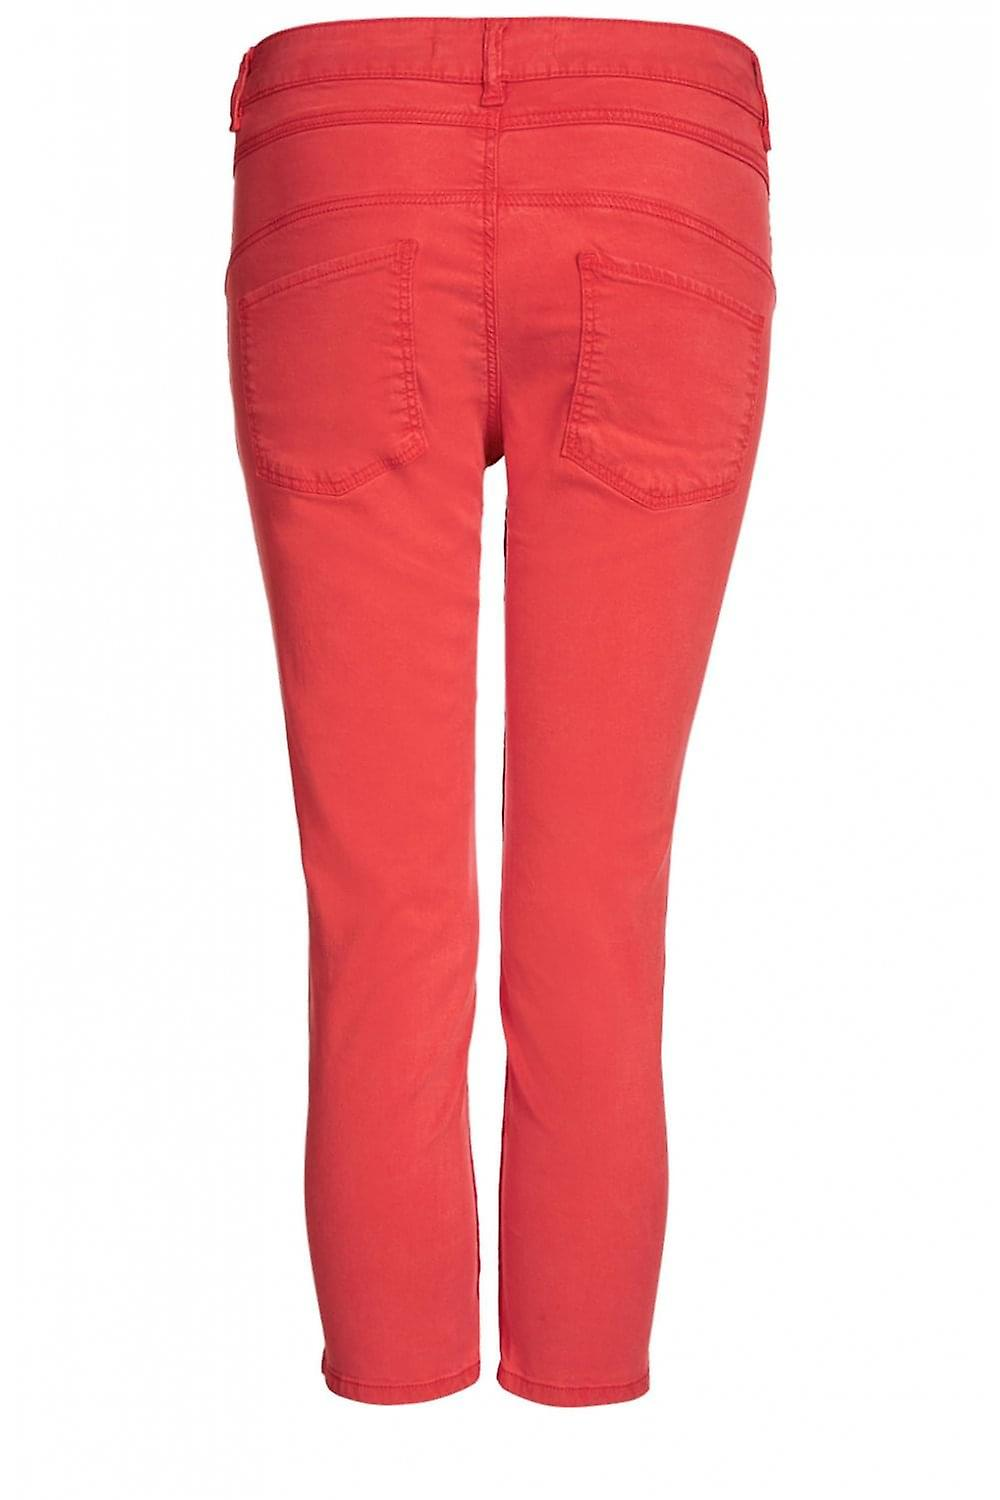 Oui Red Cropped Newport Trousers sY2aqD